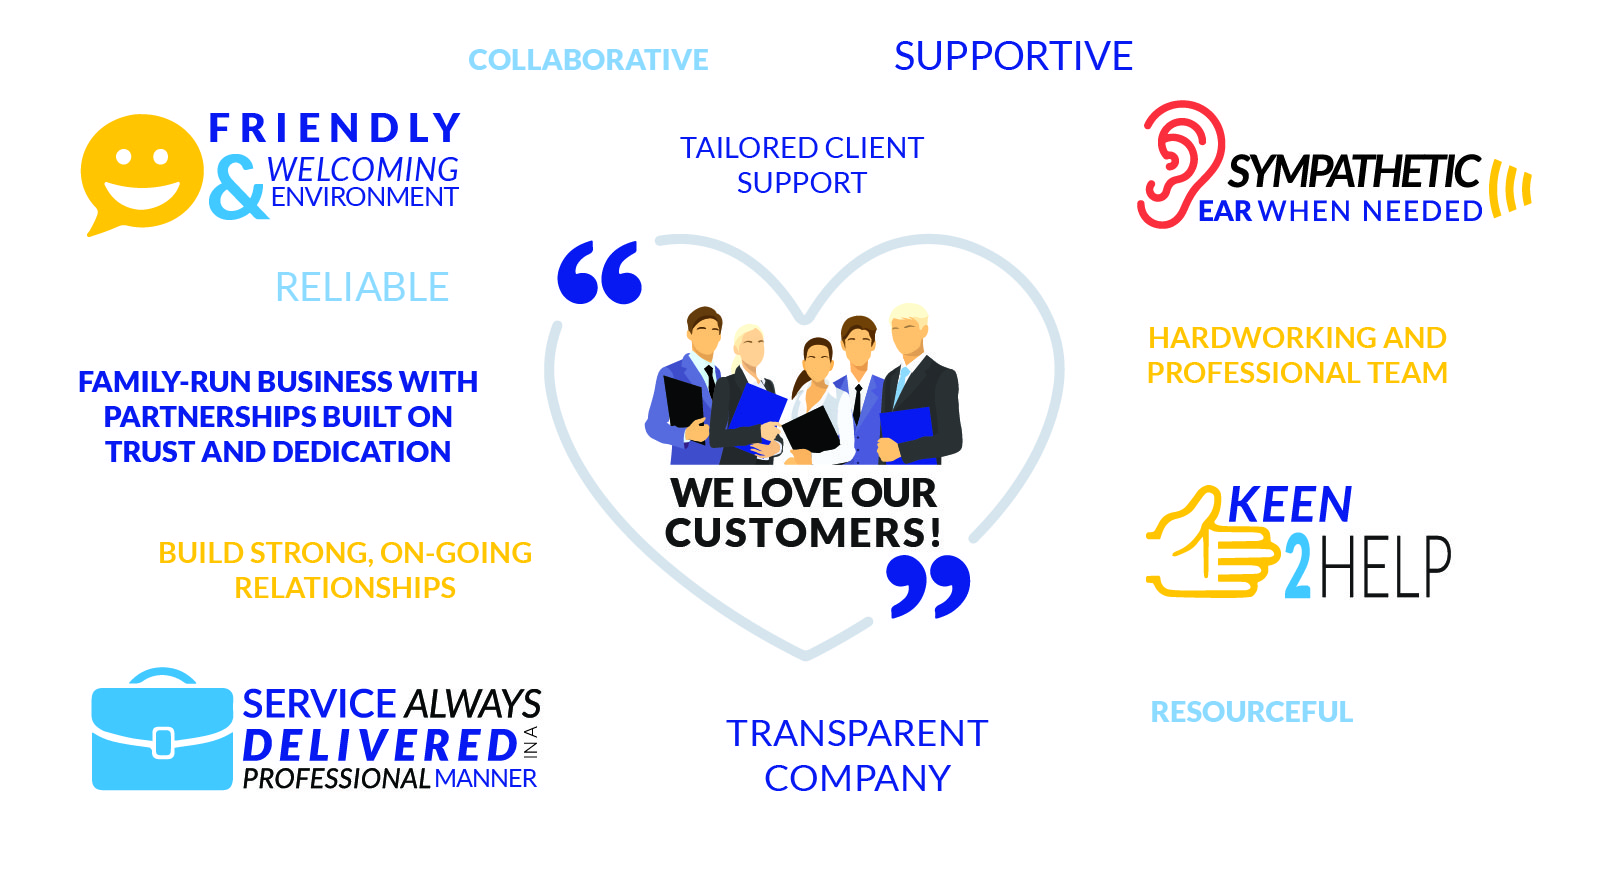 customer service quality and customer service Customer service standards government agencies often have a reputation with the public for poor performance provide courteous and professional customer service deliver the highest quality products and service with the goal of exceeding customer expectations.